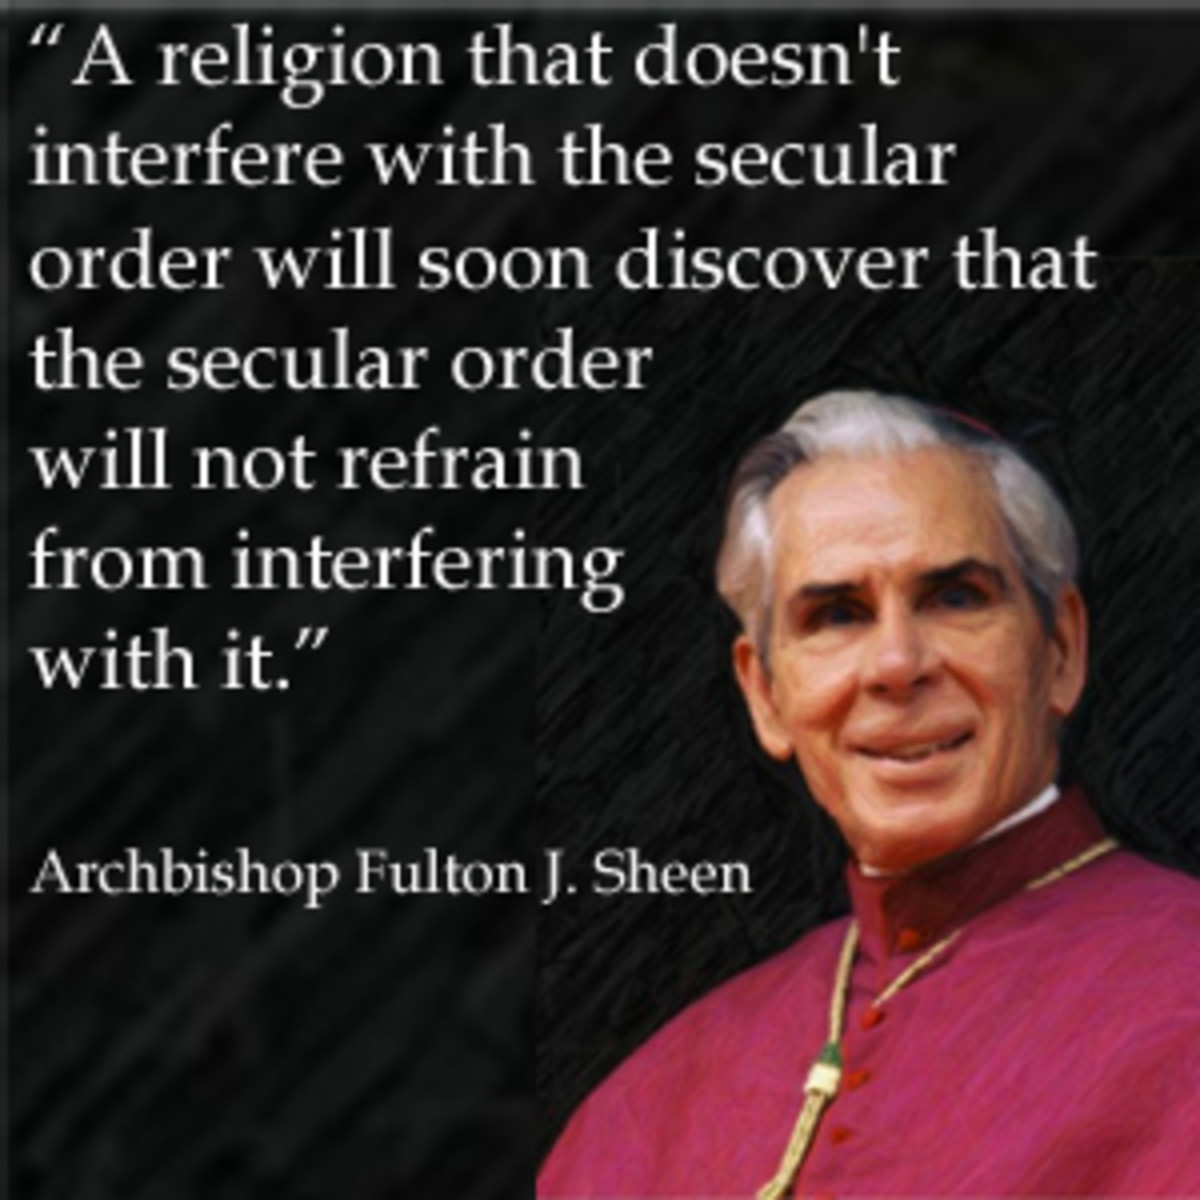 Quote from Archbishop Fulton J. Sheen